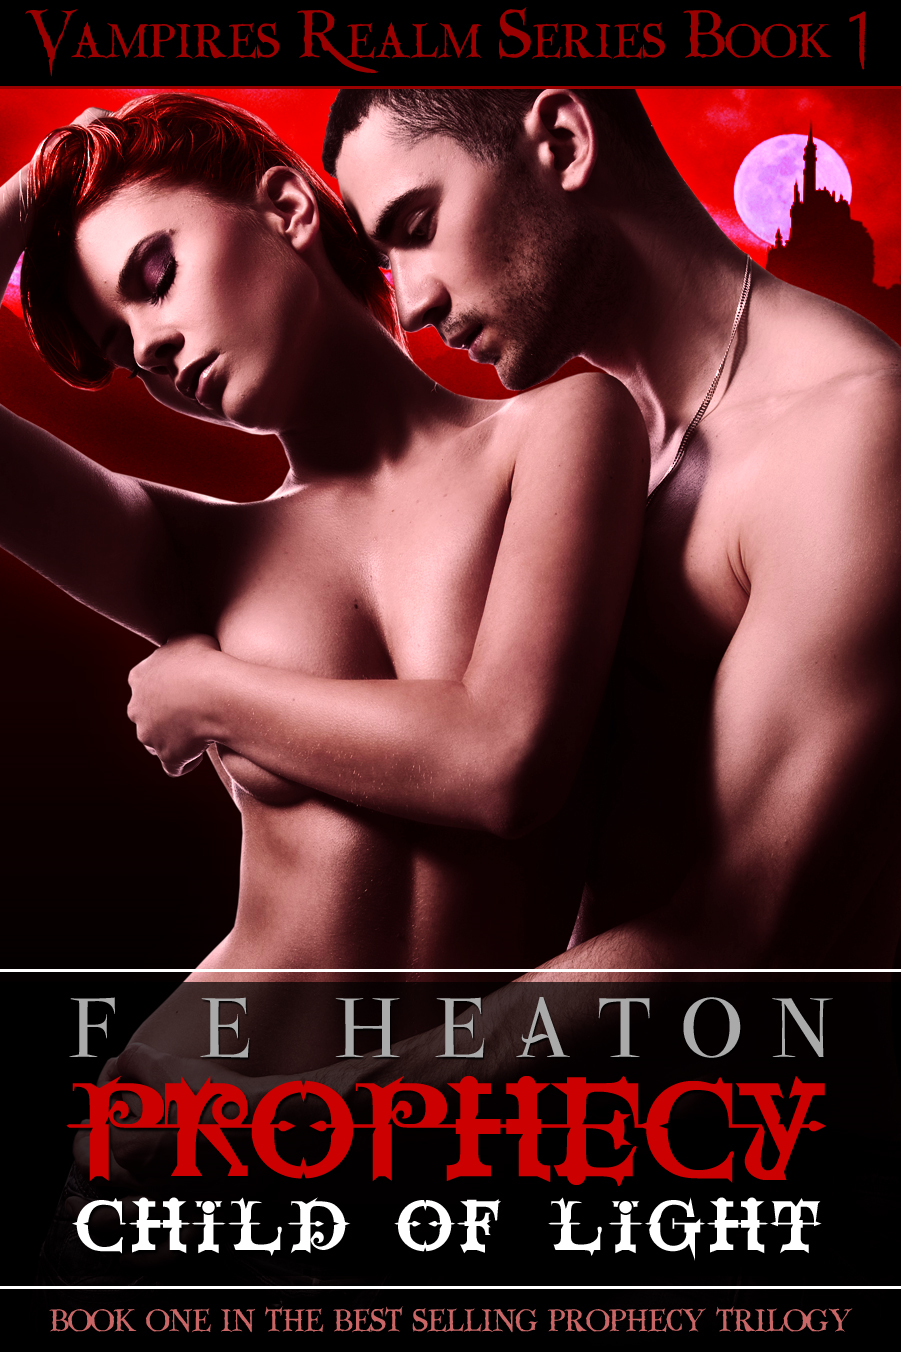 Prophecy: Child of Light (Vampires Realm Romance Series #1) By: F E Heaton